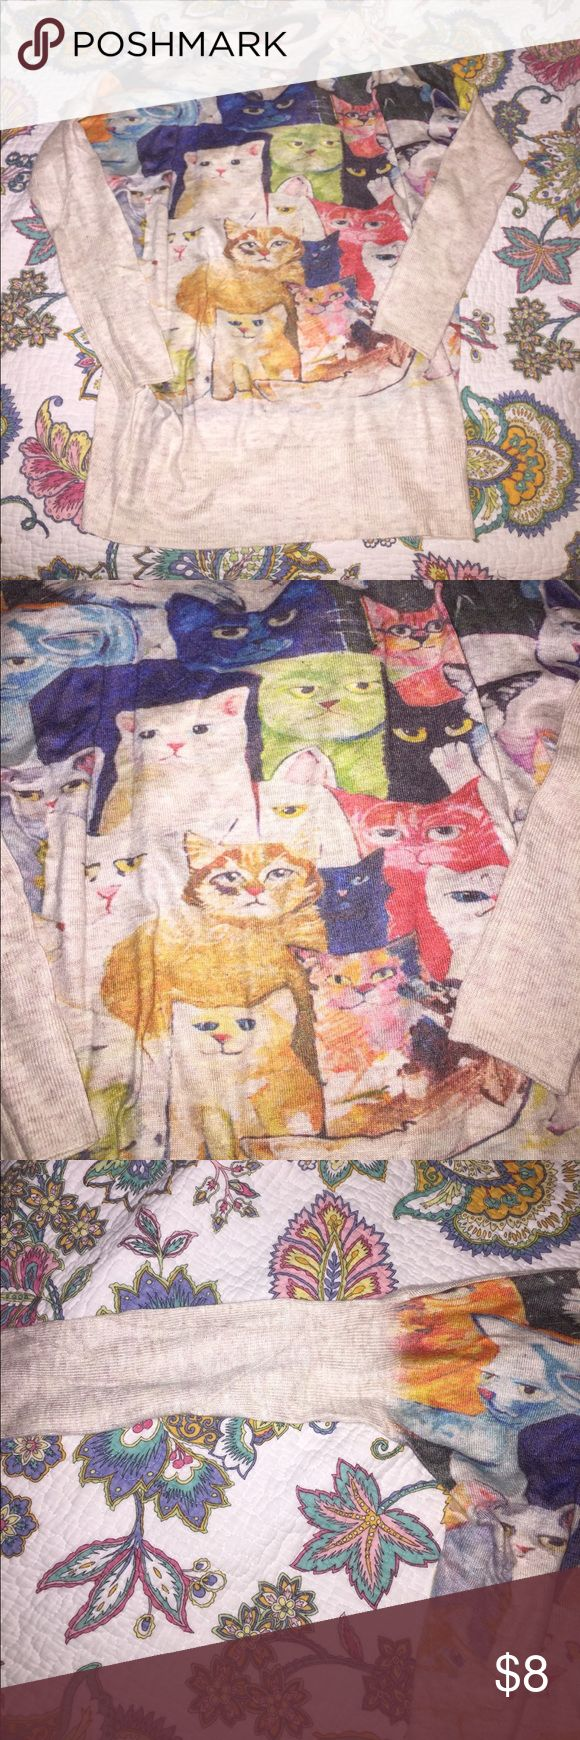 Cat sweater I bought this to make into an ugly Christmas sweater for a party but never ended up doing it. Like new condition. Riches on the arm band, size small. Perfect for a cat lover or as a joke! 😊 Sweaters